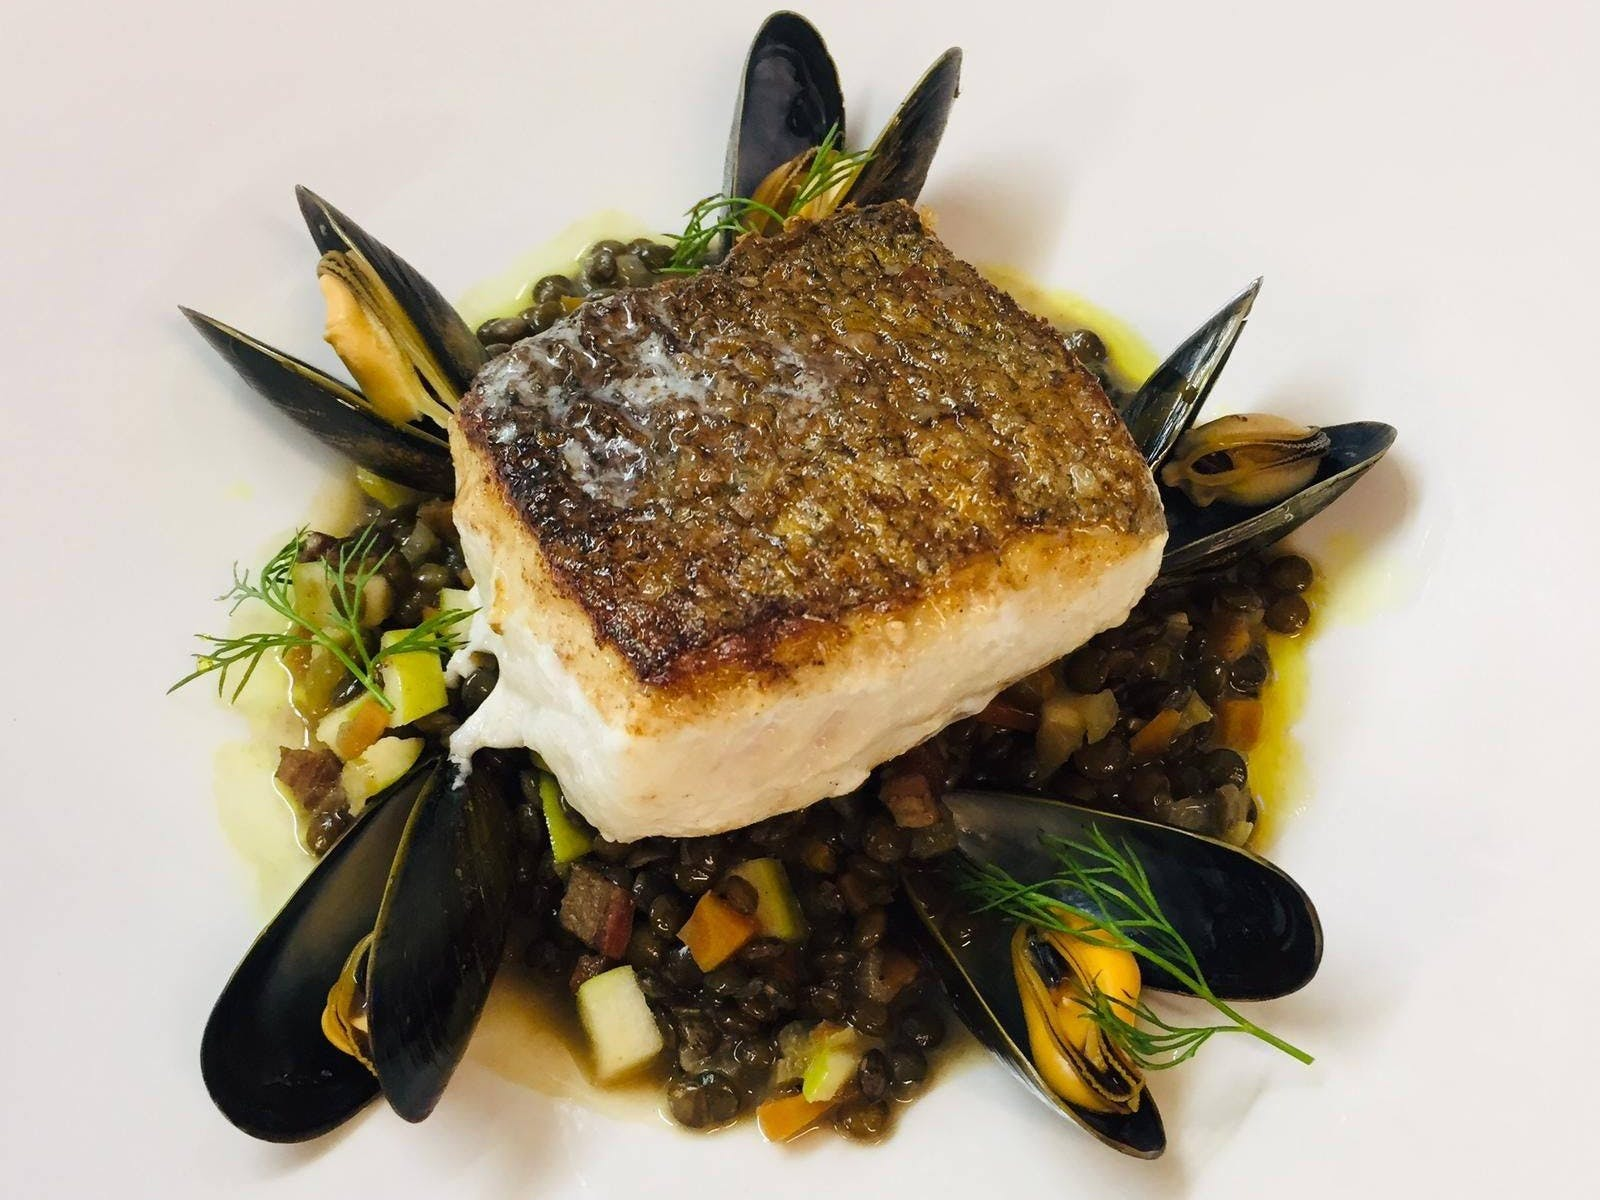 Fillet of hake, lentils, mussels, Granny Smith apple.